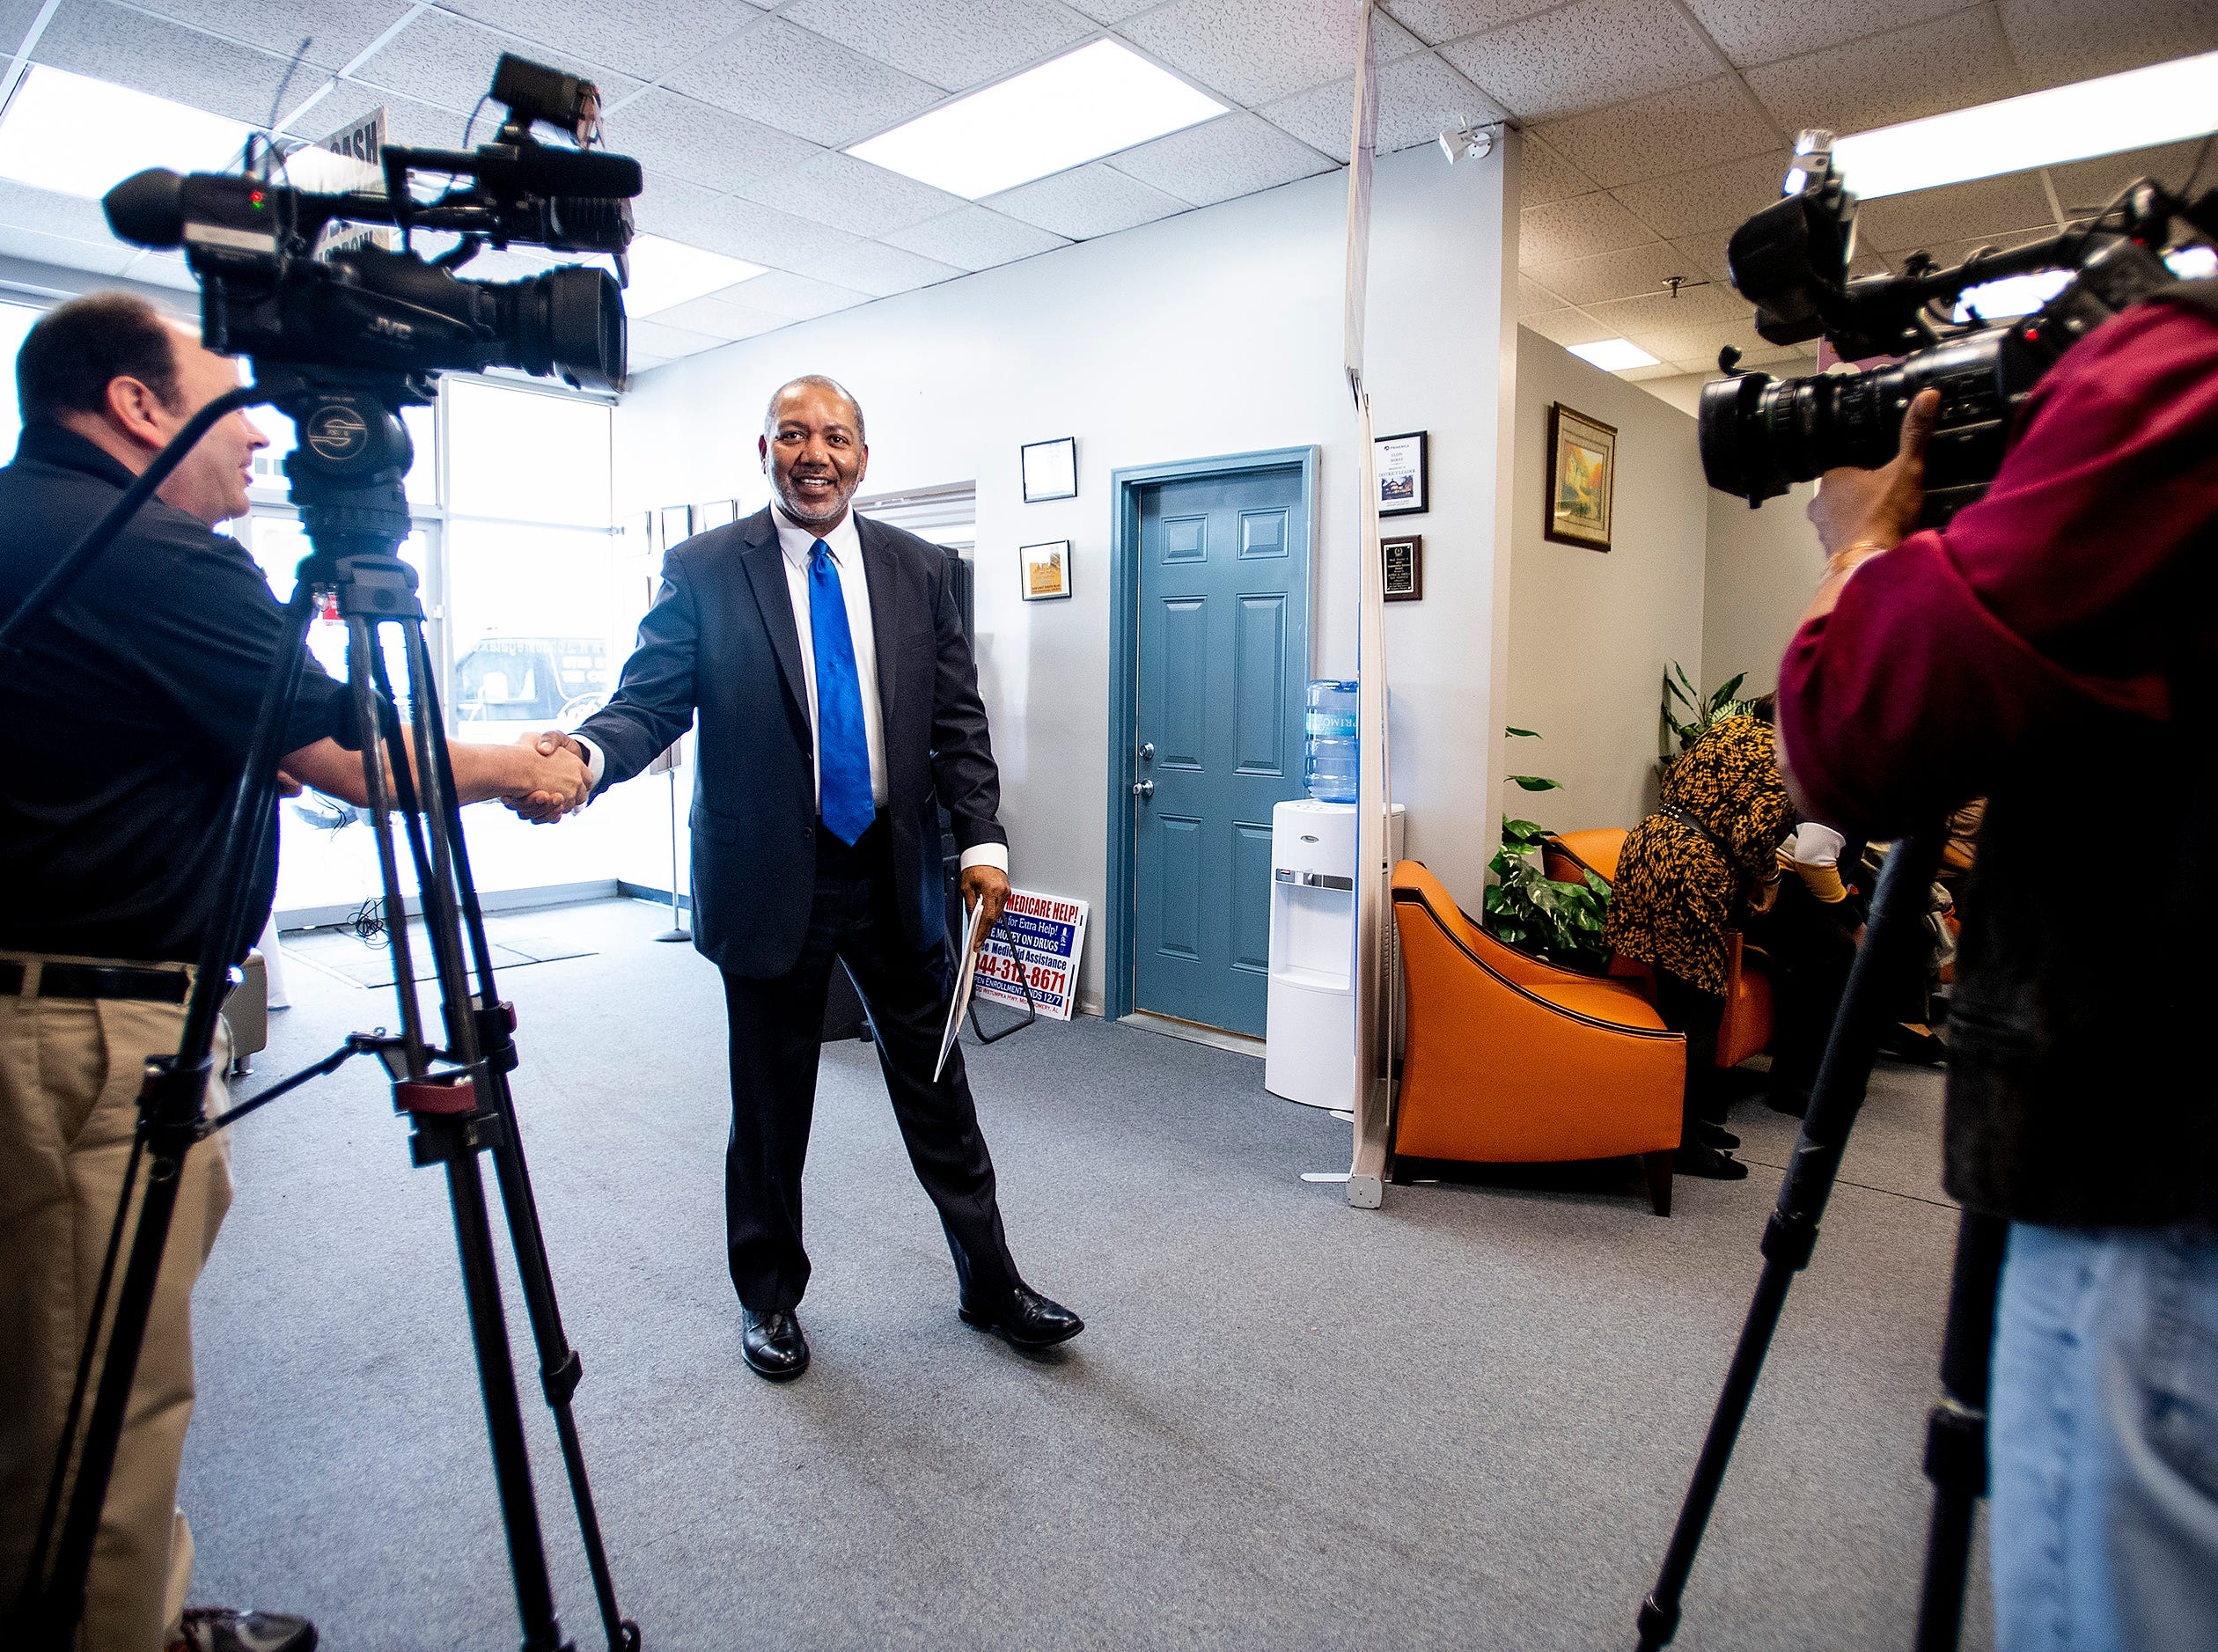 Jon Dow arrives for a press conference where he announces that he is running to take back his city council seat in Montgomery, Ala., on Thursday February 7, 2019.